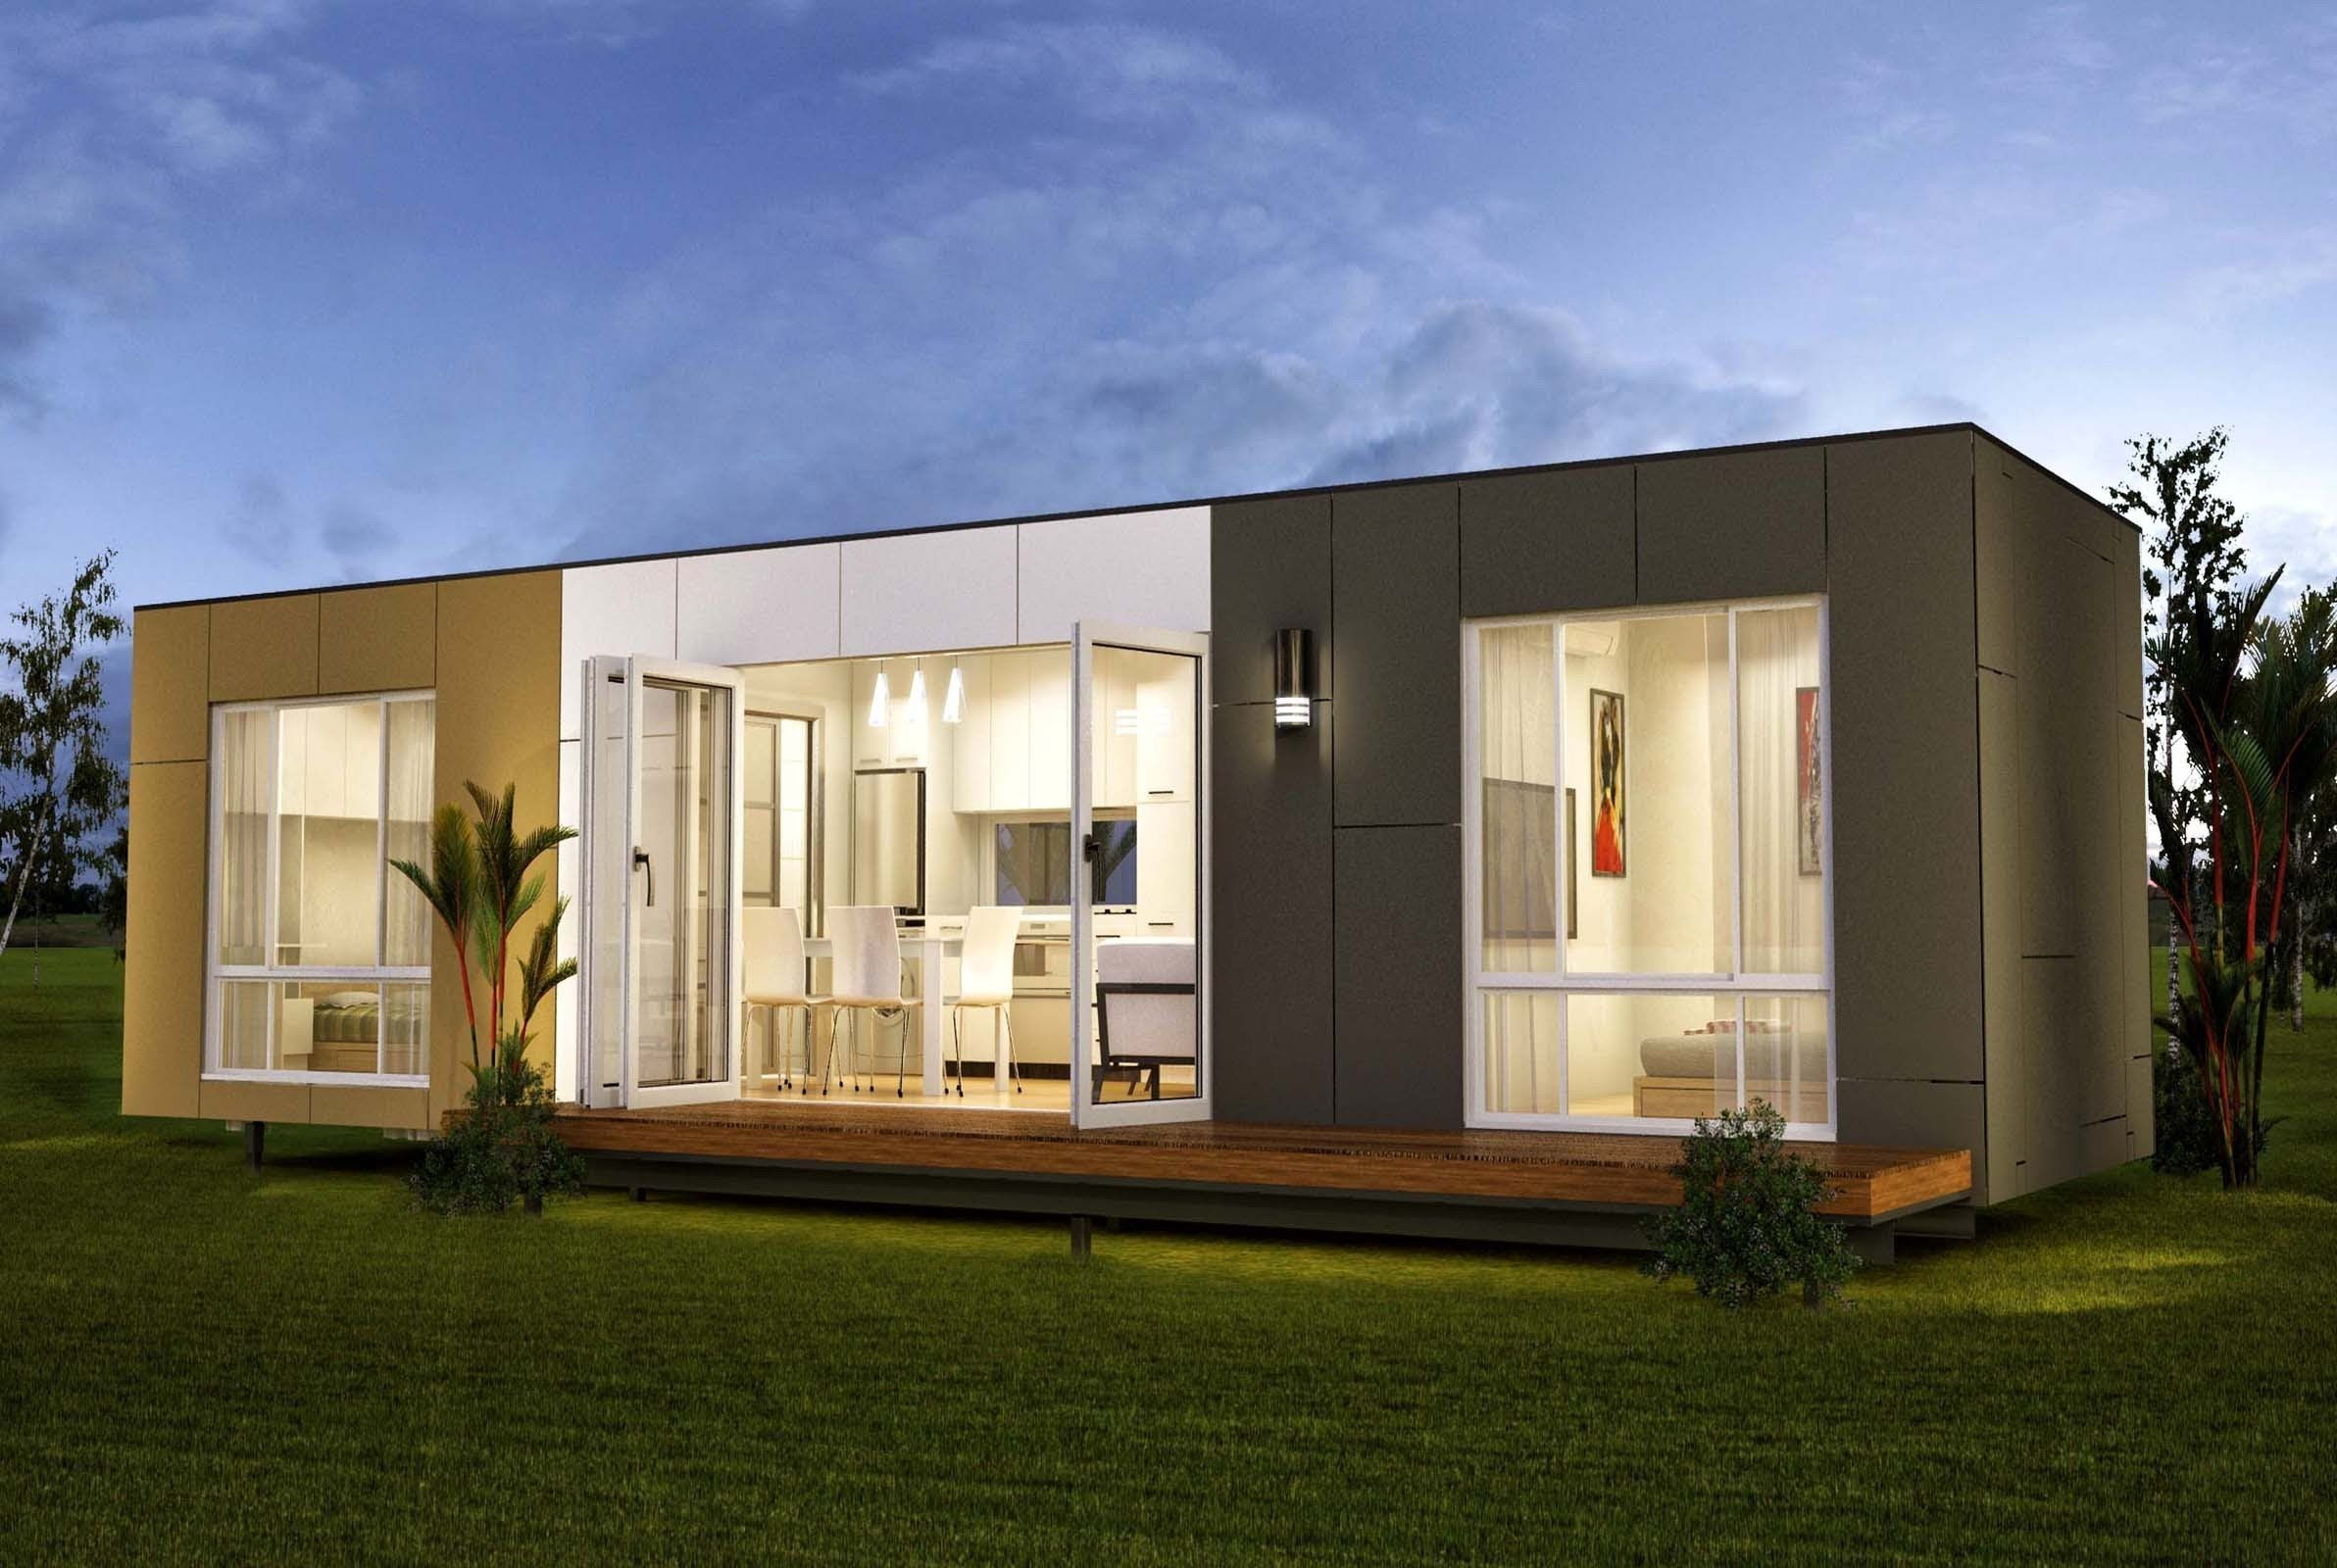 shipping container office plans. Best Kitchen Gallery: Container Homes Design House Plans Home Decor Ideas Office Of Shipping